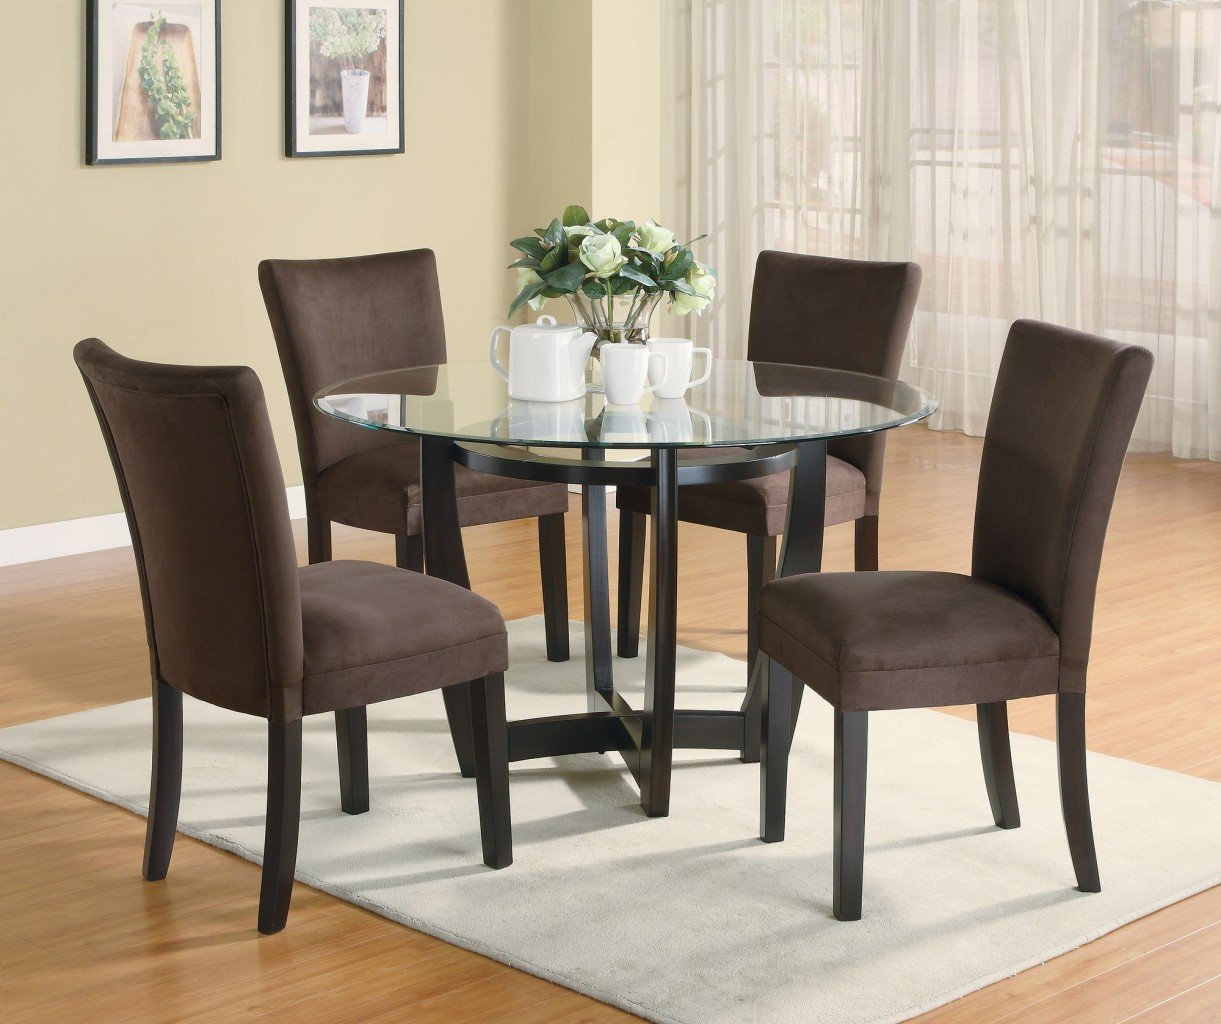 Cheap Dining Table And Chairs: Cheap Dining Room Table Sets